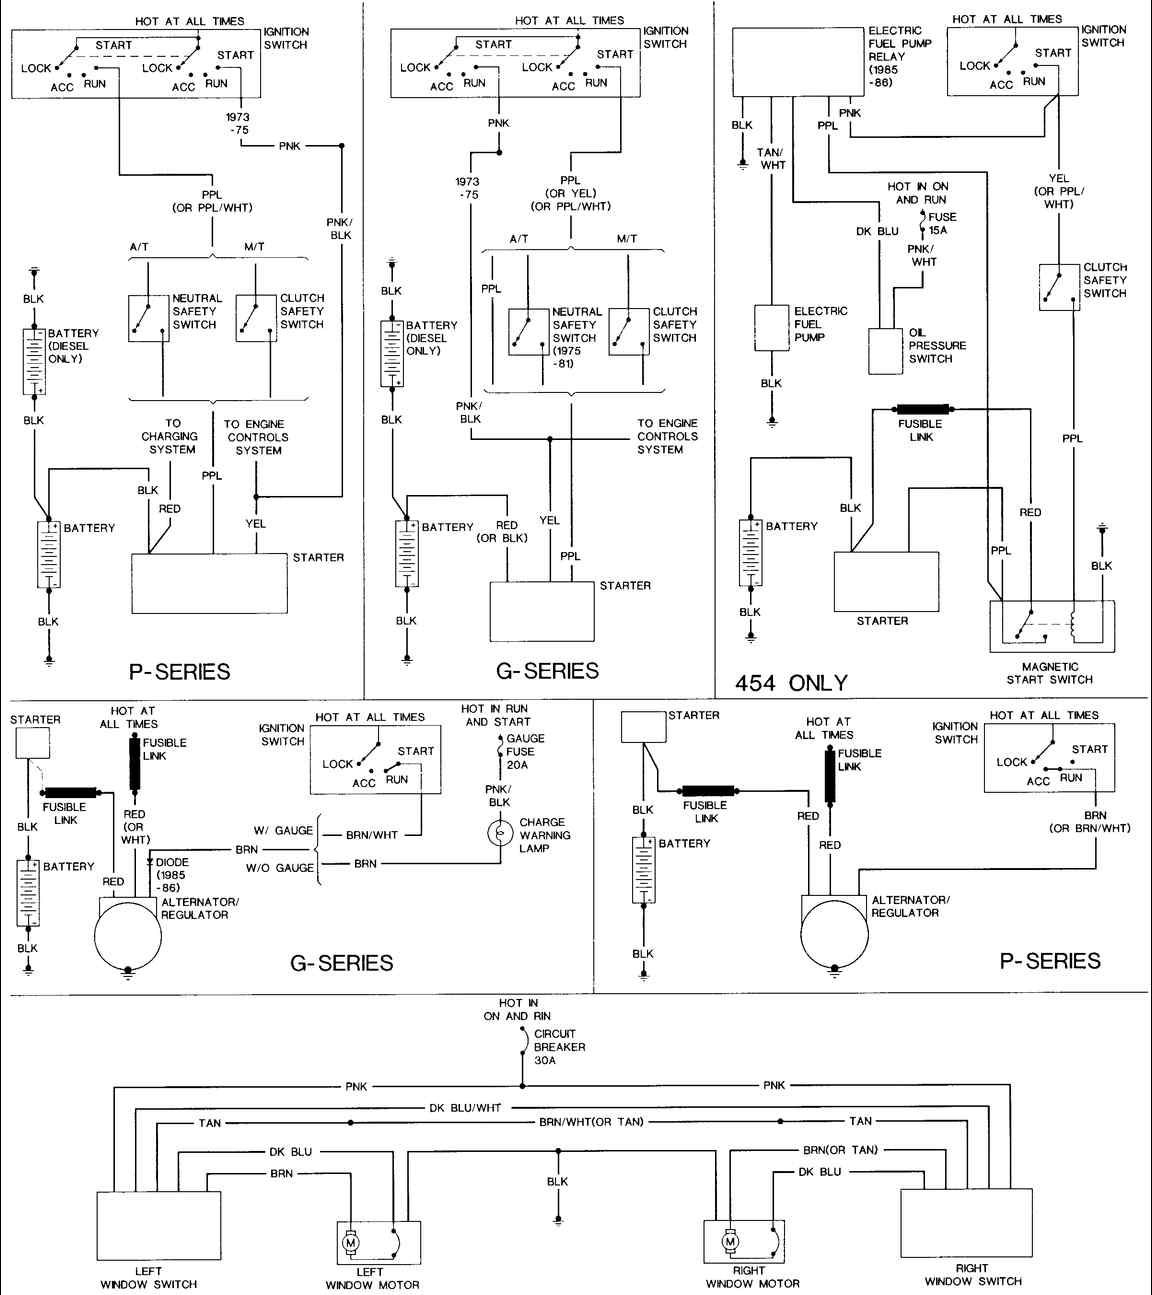 1988 C30 Wiring Diagram Archive Of Automotive 1987 Gmc P3500 73 Chevy Starting Know About U2022 Rh Prezzy Co